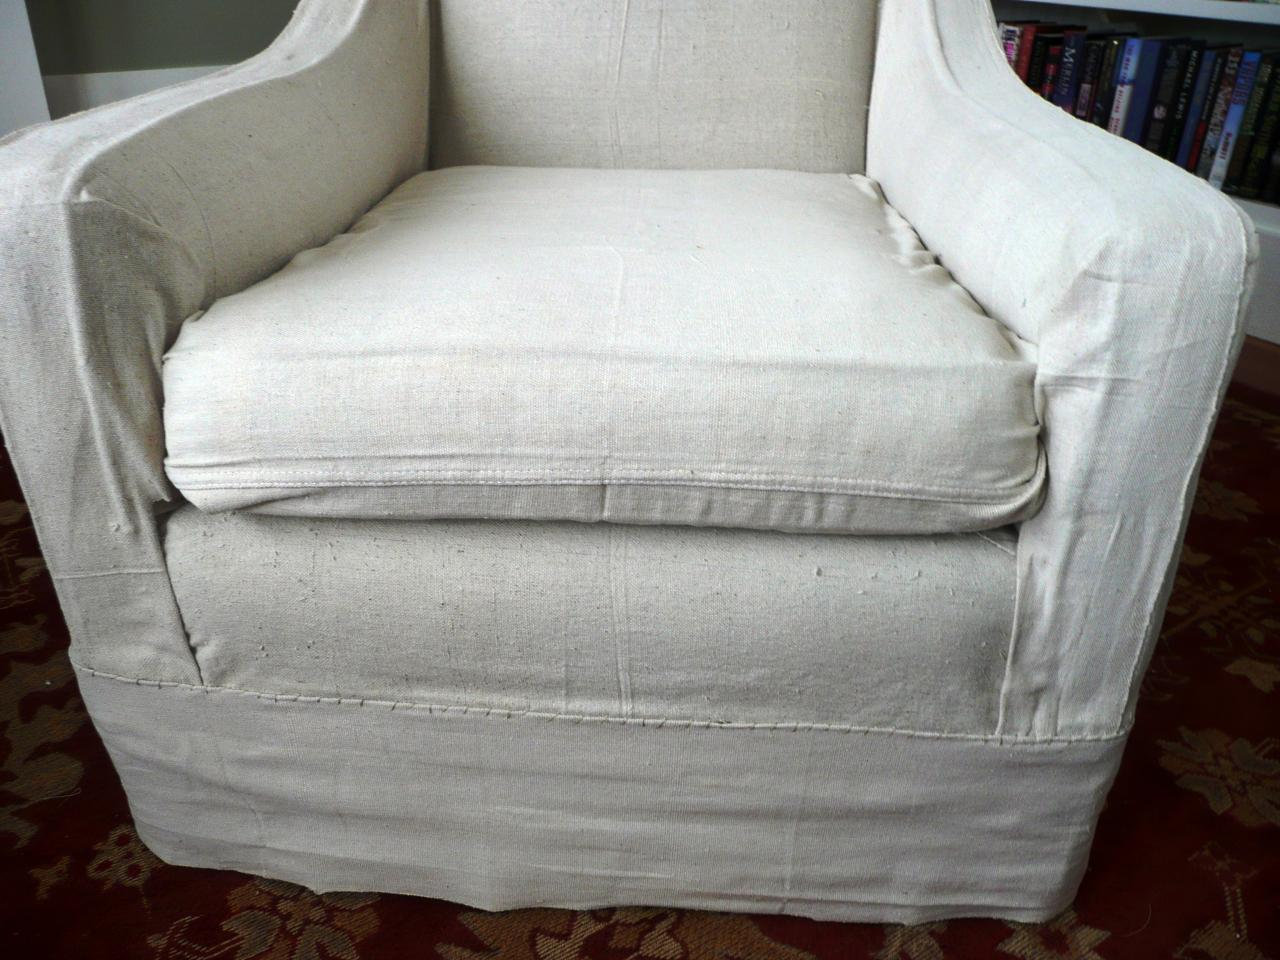 chair arm protectors pattern swivel wood base how to make sofa armrest covers tutorial simple fabric